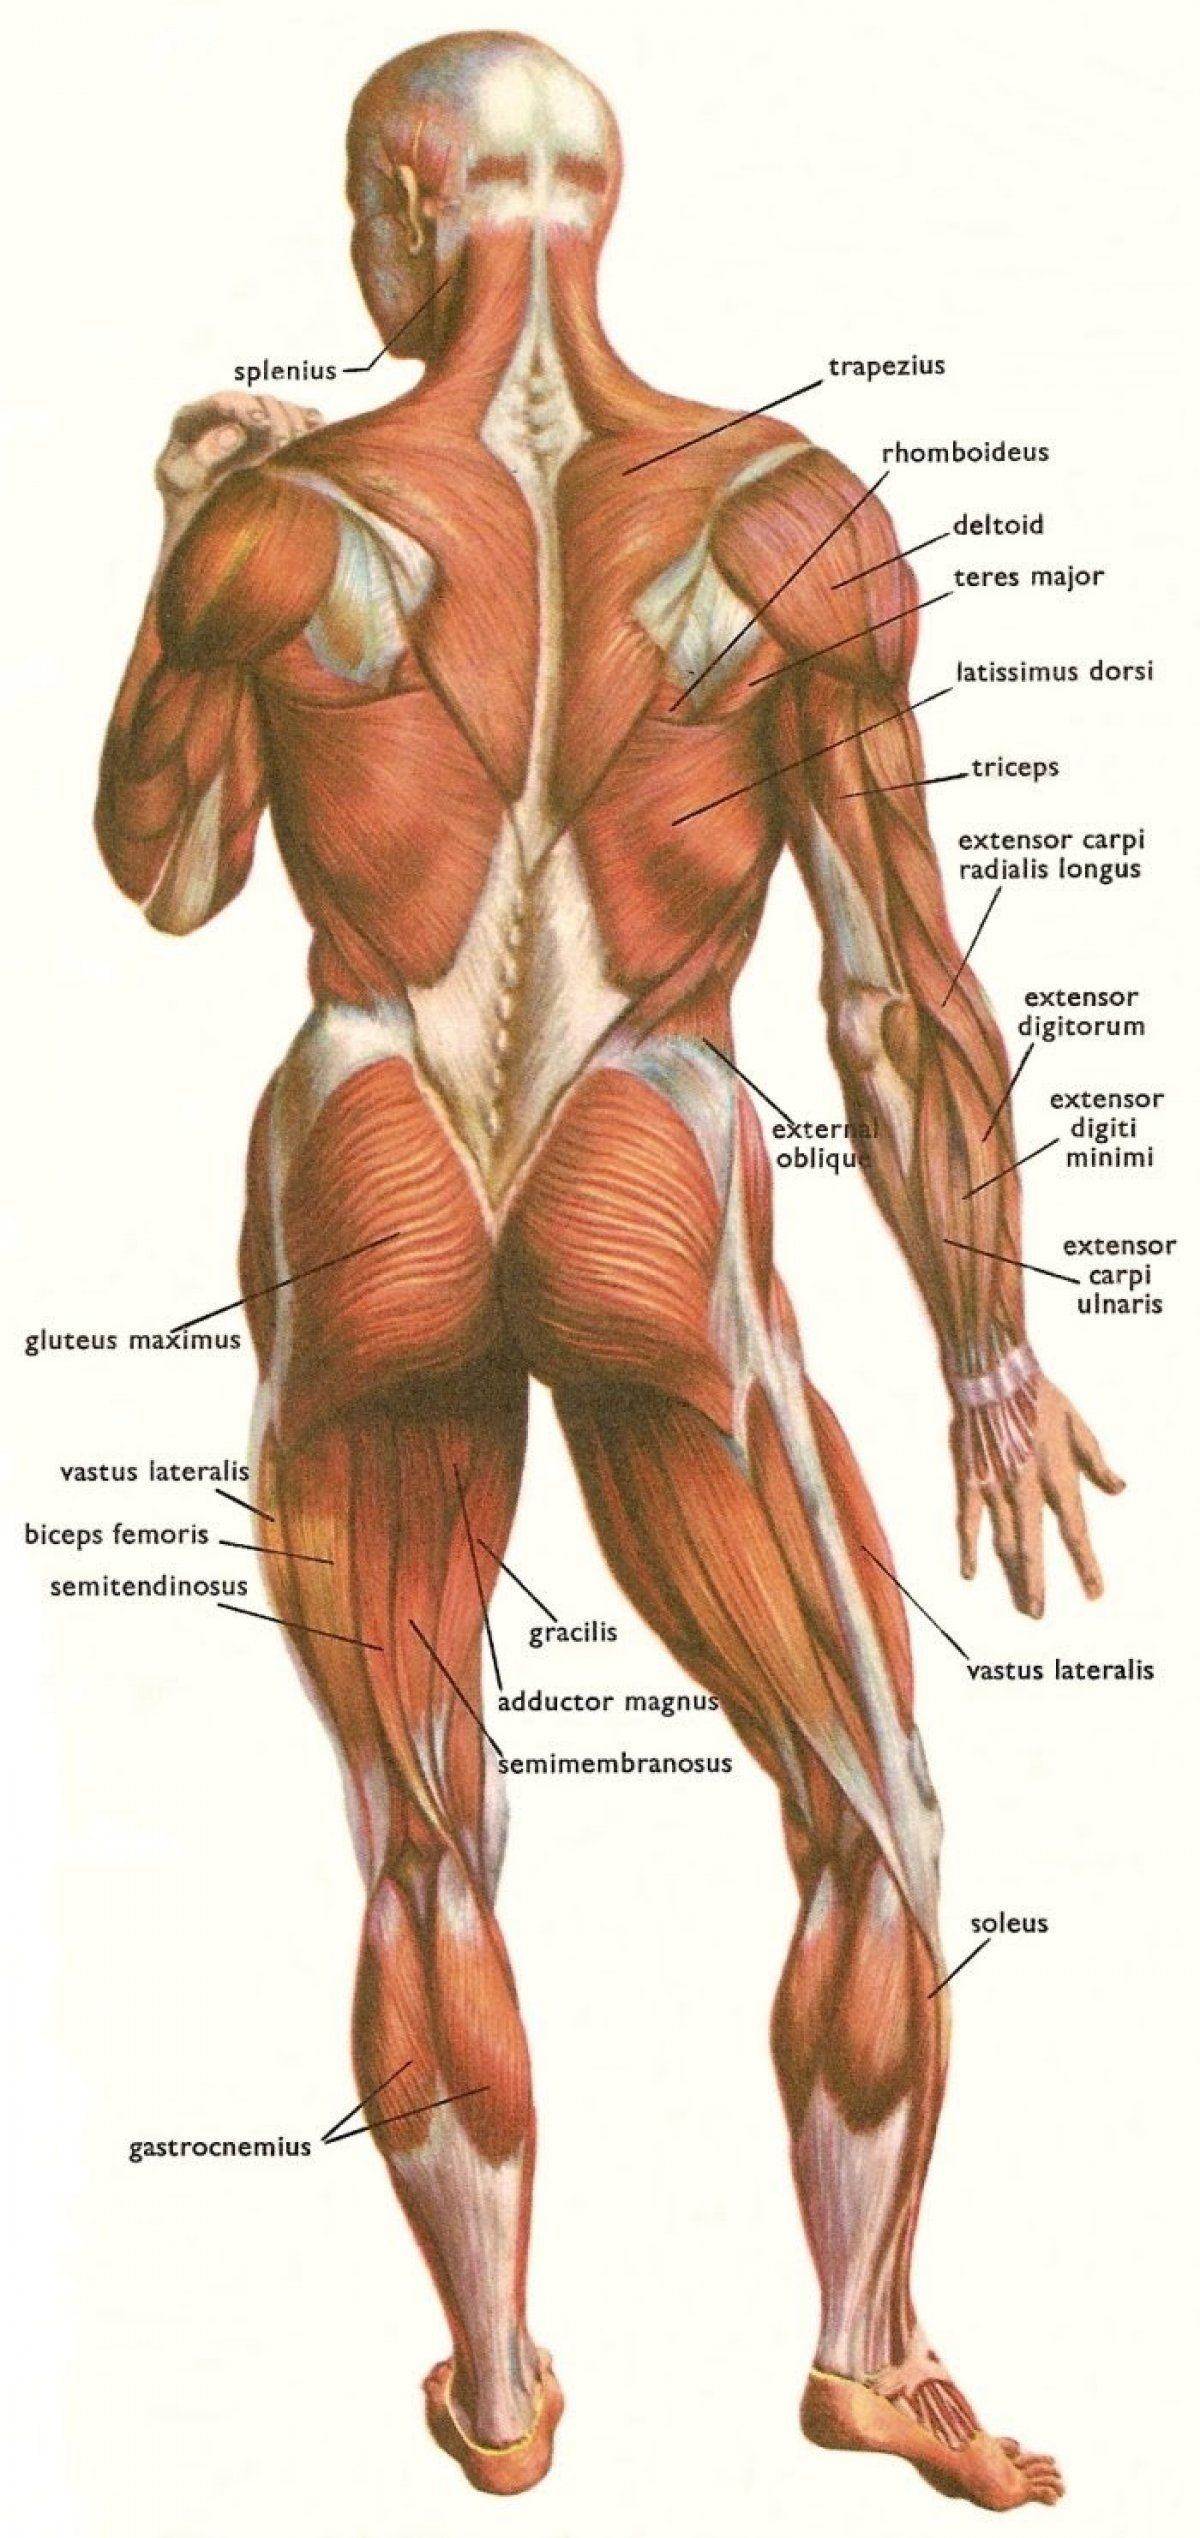 Doms a necessary evil art practice pinterest muscle back muscle diagram human body ccuart Image collections